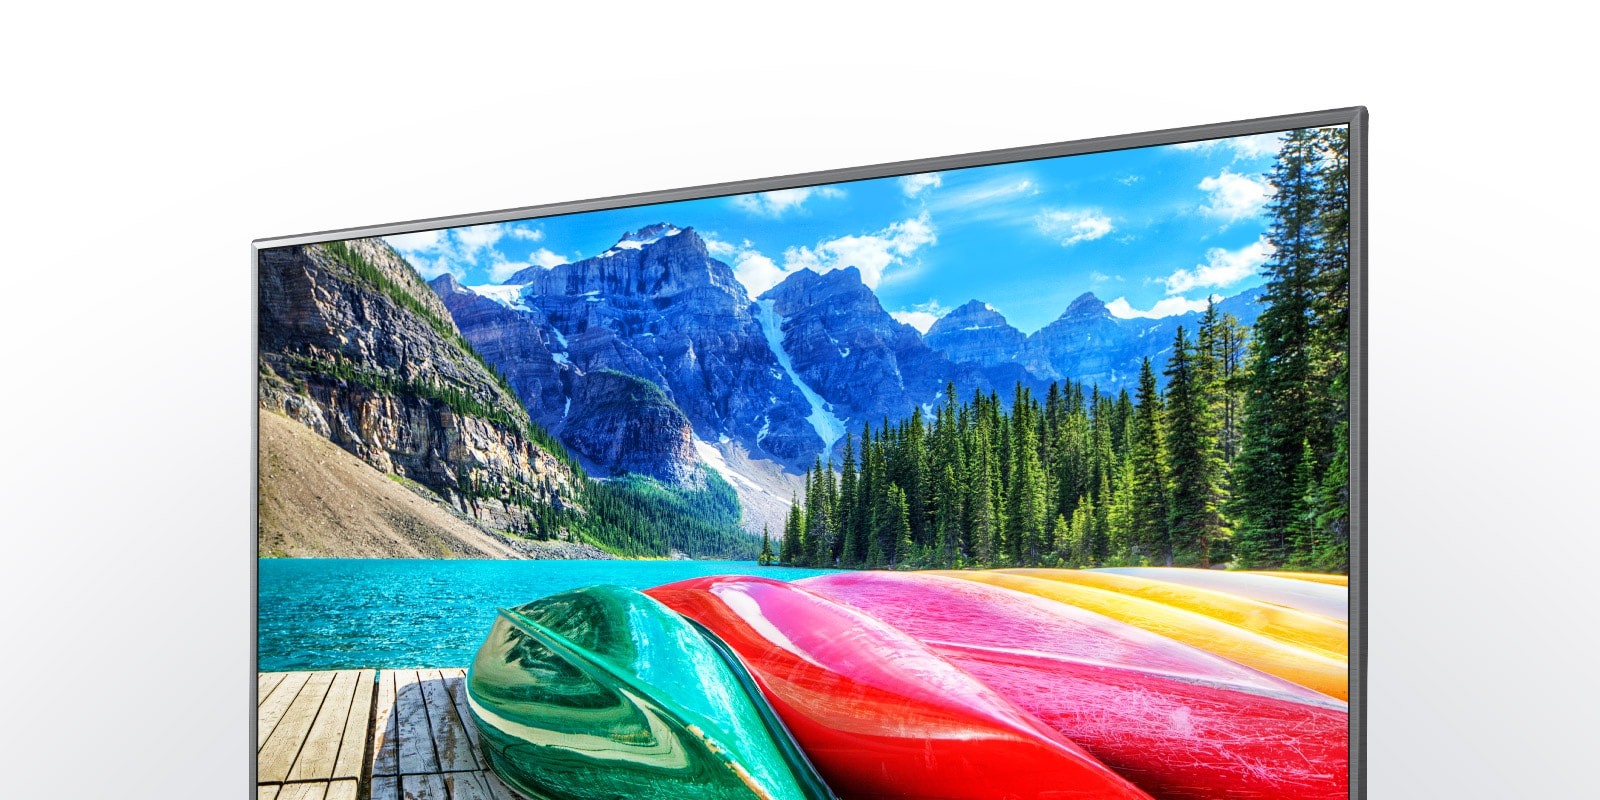 tv with image of boats, river, and mountain in the background